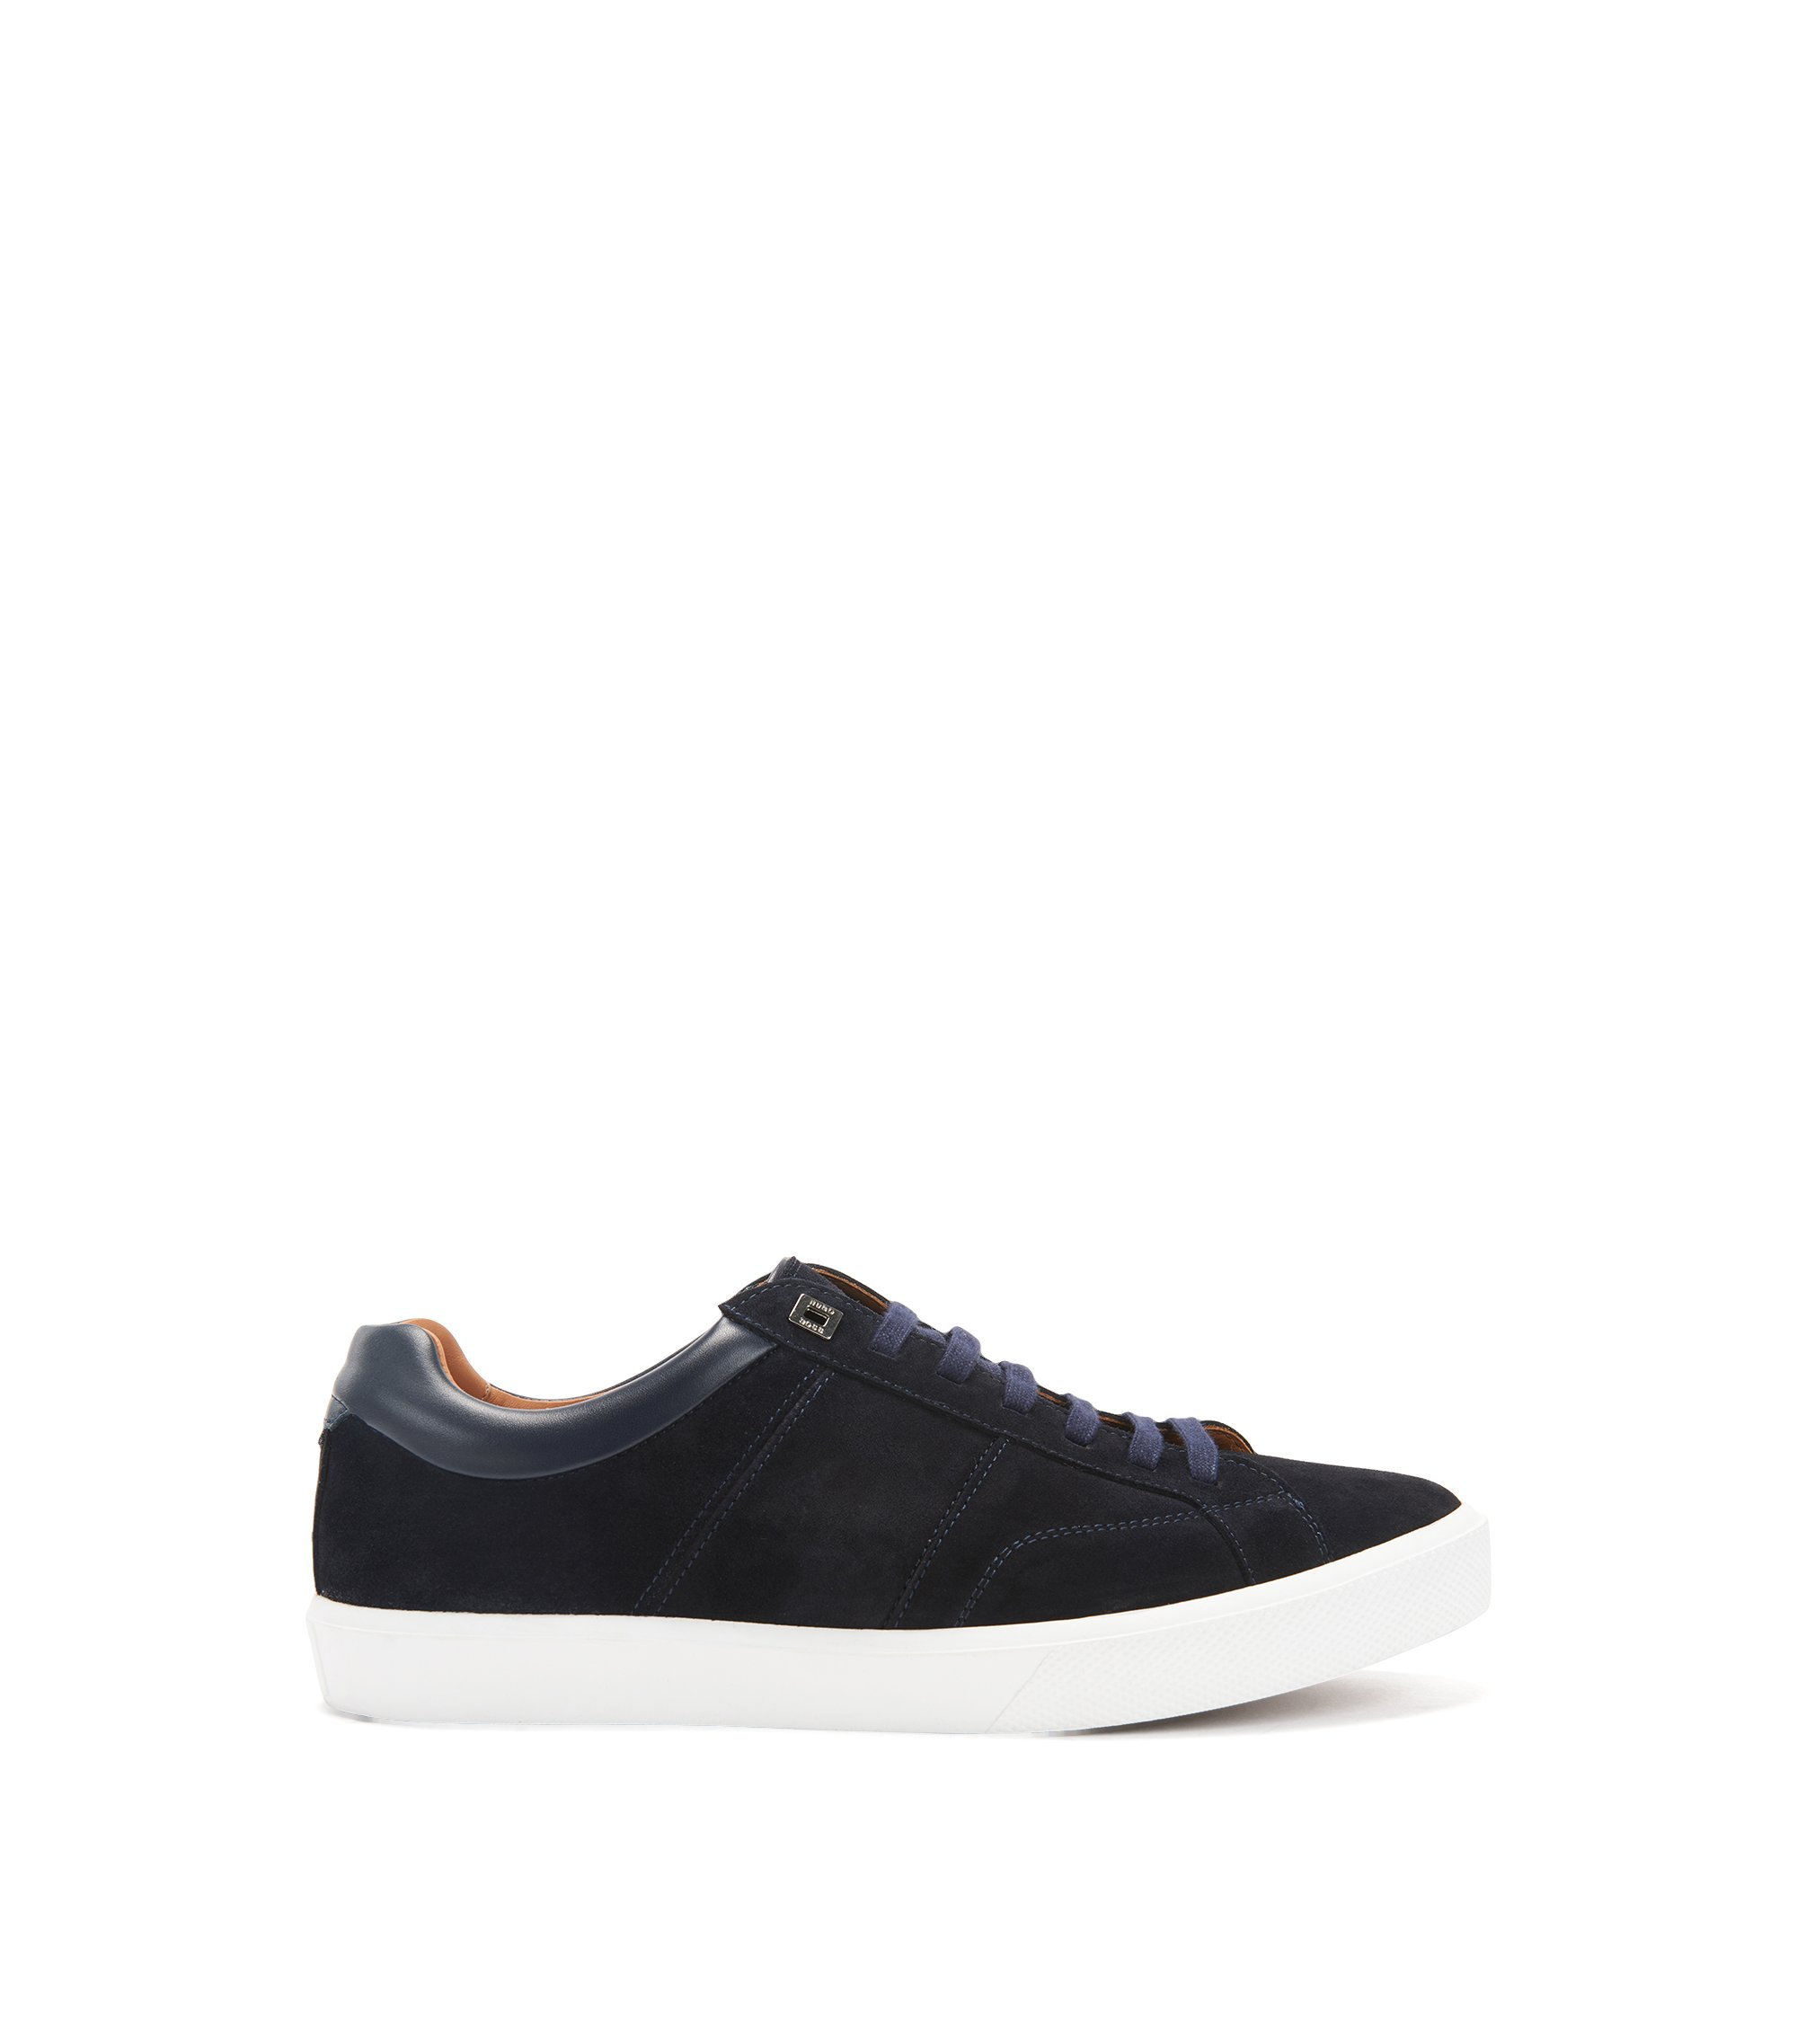 Tennis-inspired trainers with Italian calfskin-suede uppers, Dark Blue